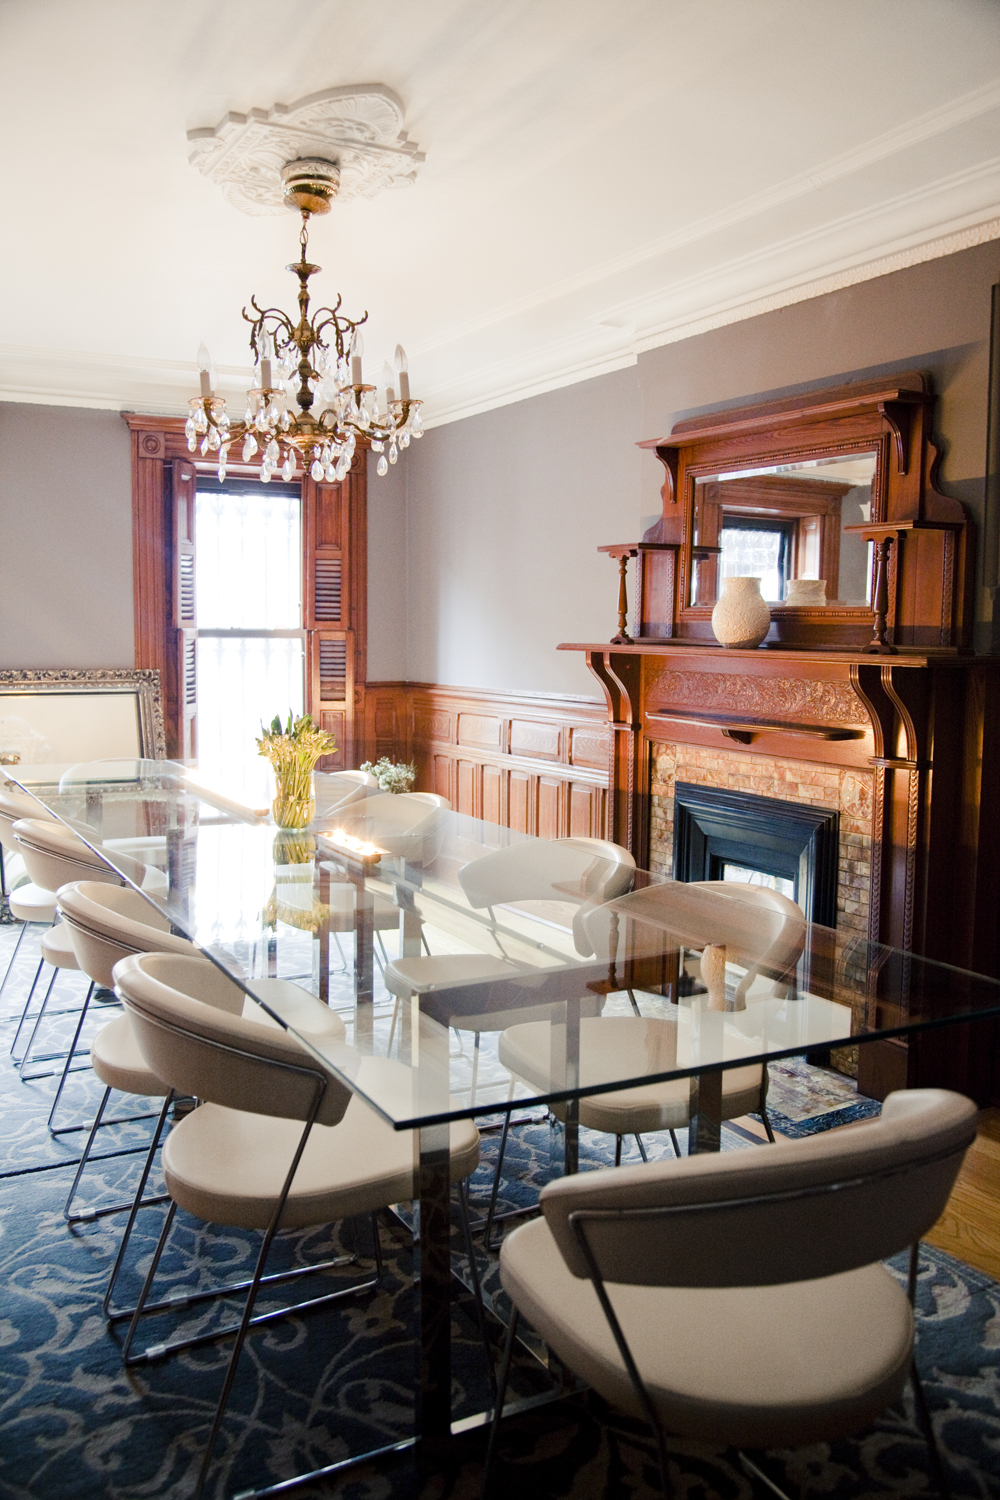 Brooklyn brownstone interior design project  modern dining room decor. Bed Stuy   I S H K A D E S I G N S